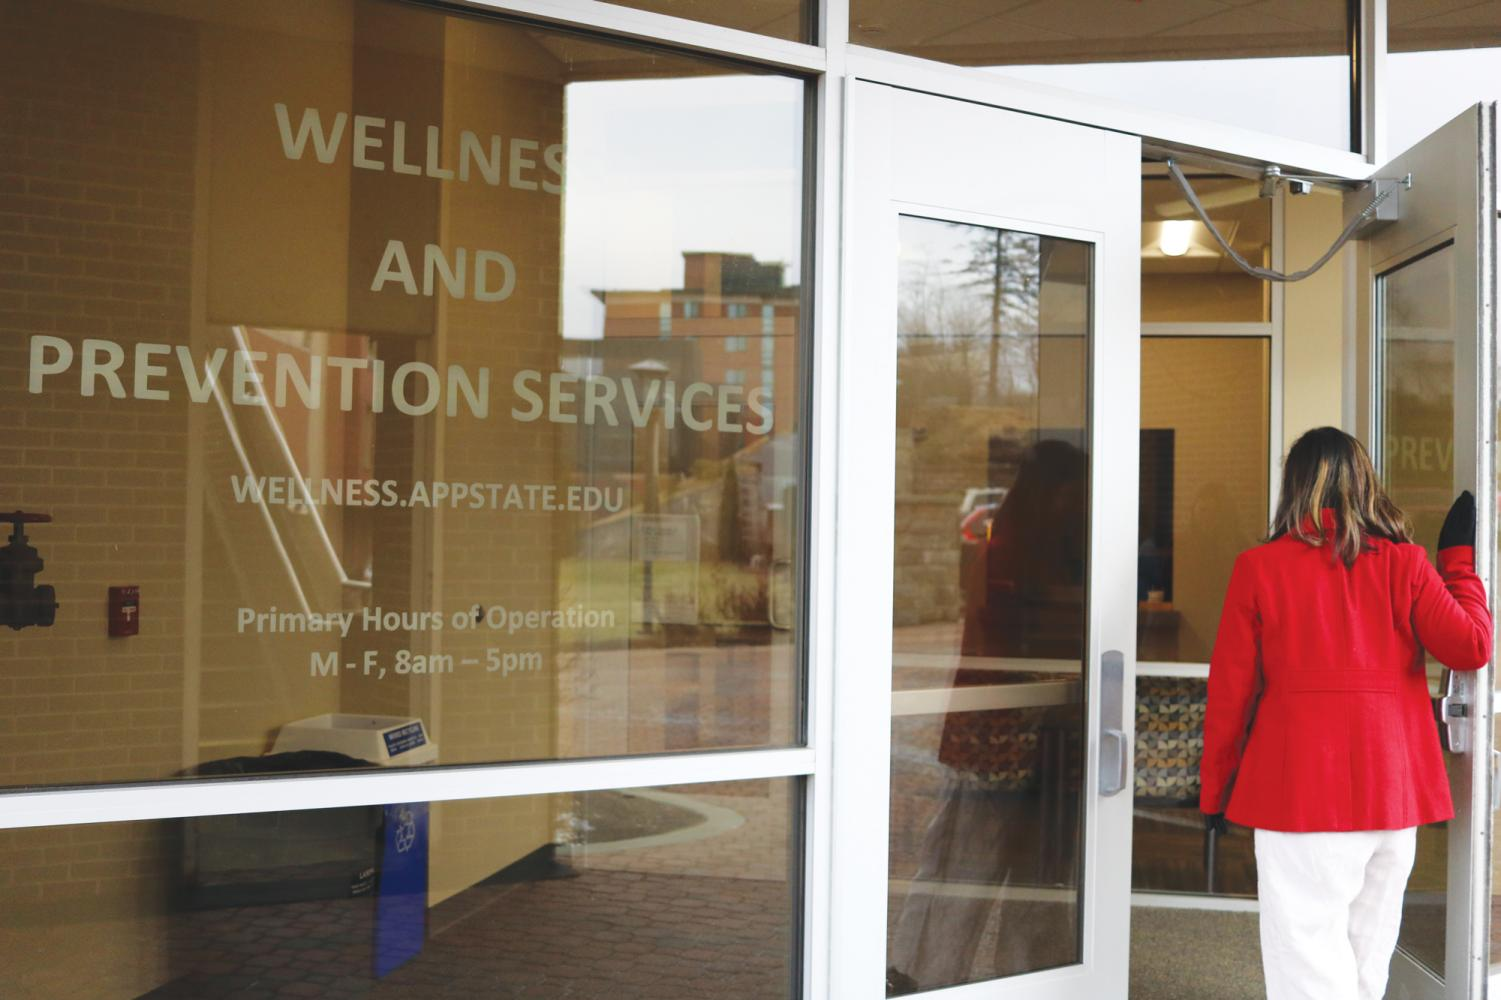 Throughout the academic year, App State's Wellness and Prevention center offers a variety of programs and resources for students to support their well-being. Programs are focused on 8 different dimensions of wellness, and all students are welcome to attend programs and events free of charge.